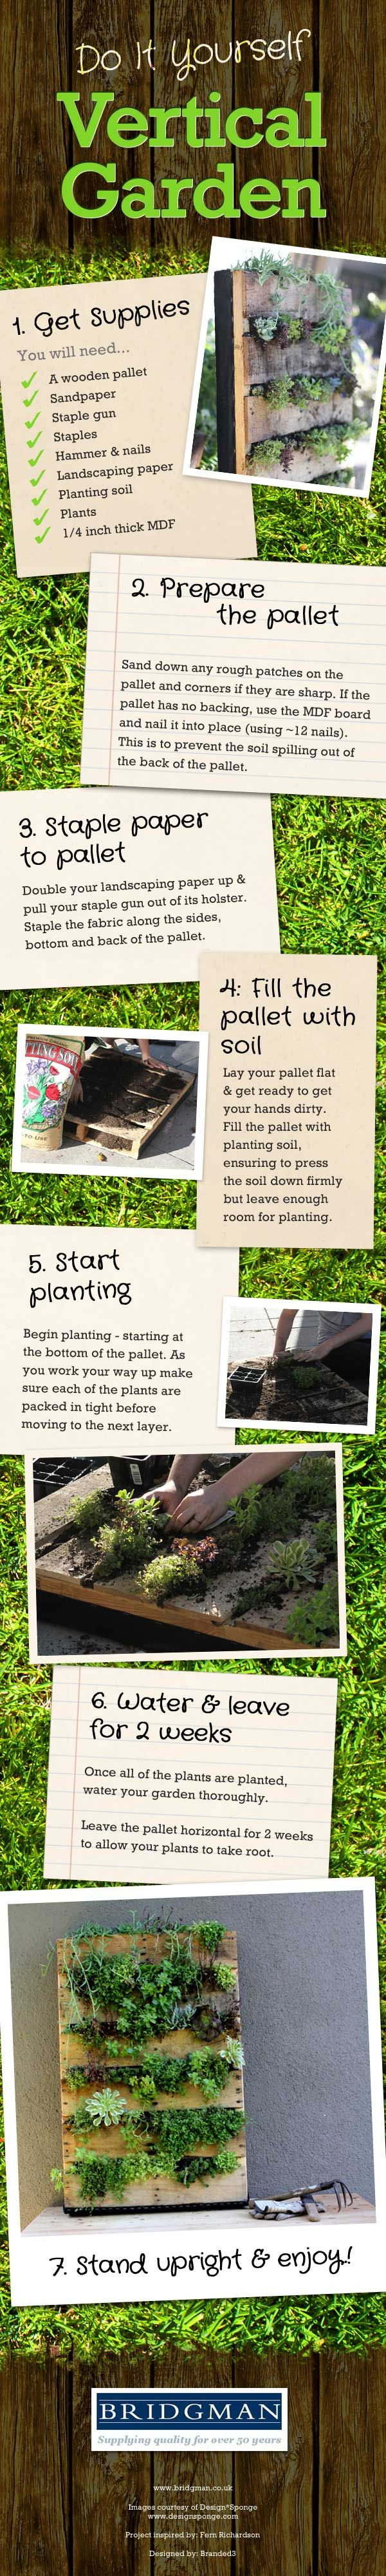 A vertical gardening how-to.